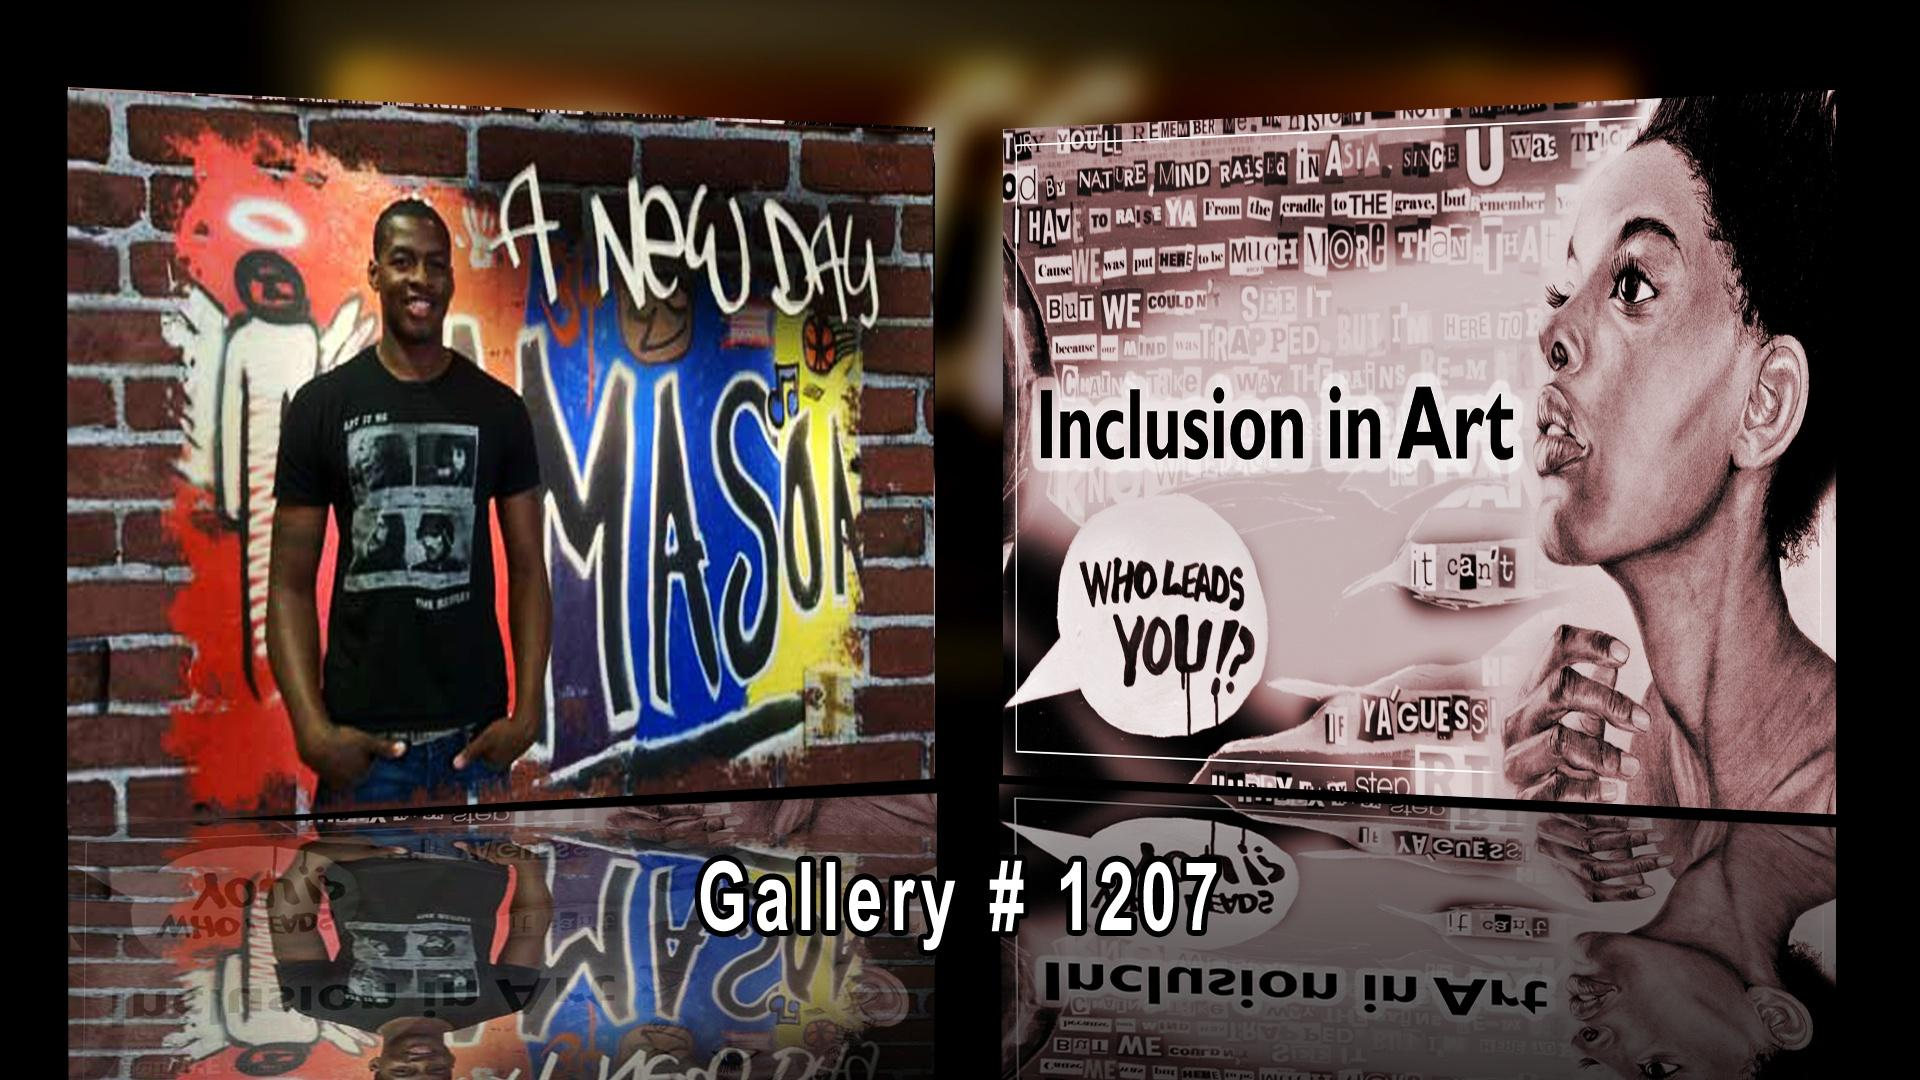 Video 1207 a new day inclusion in art watch gallery for Oeta schedule